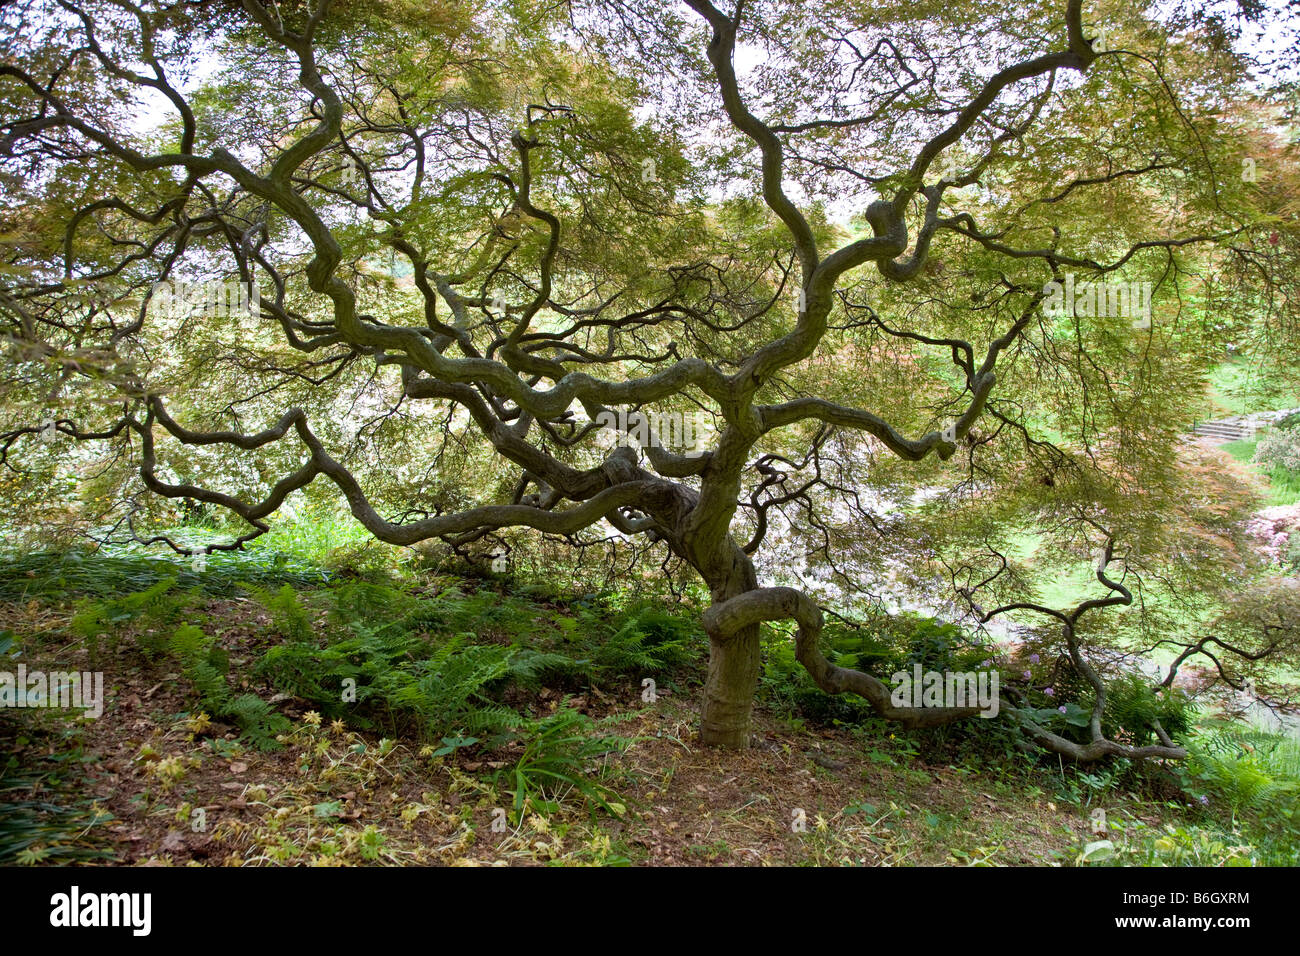 Japanese Maple tree, Winterthur Museum & Country Estate - Stock Image